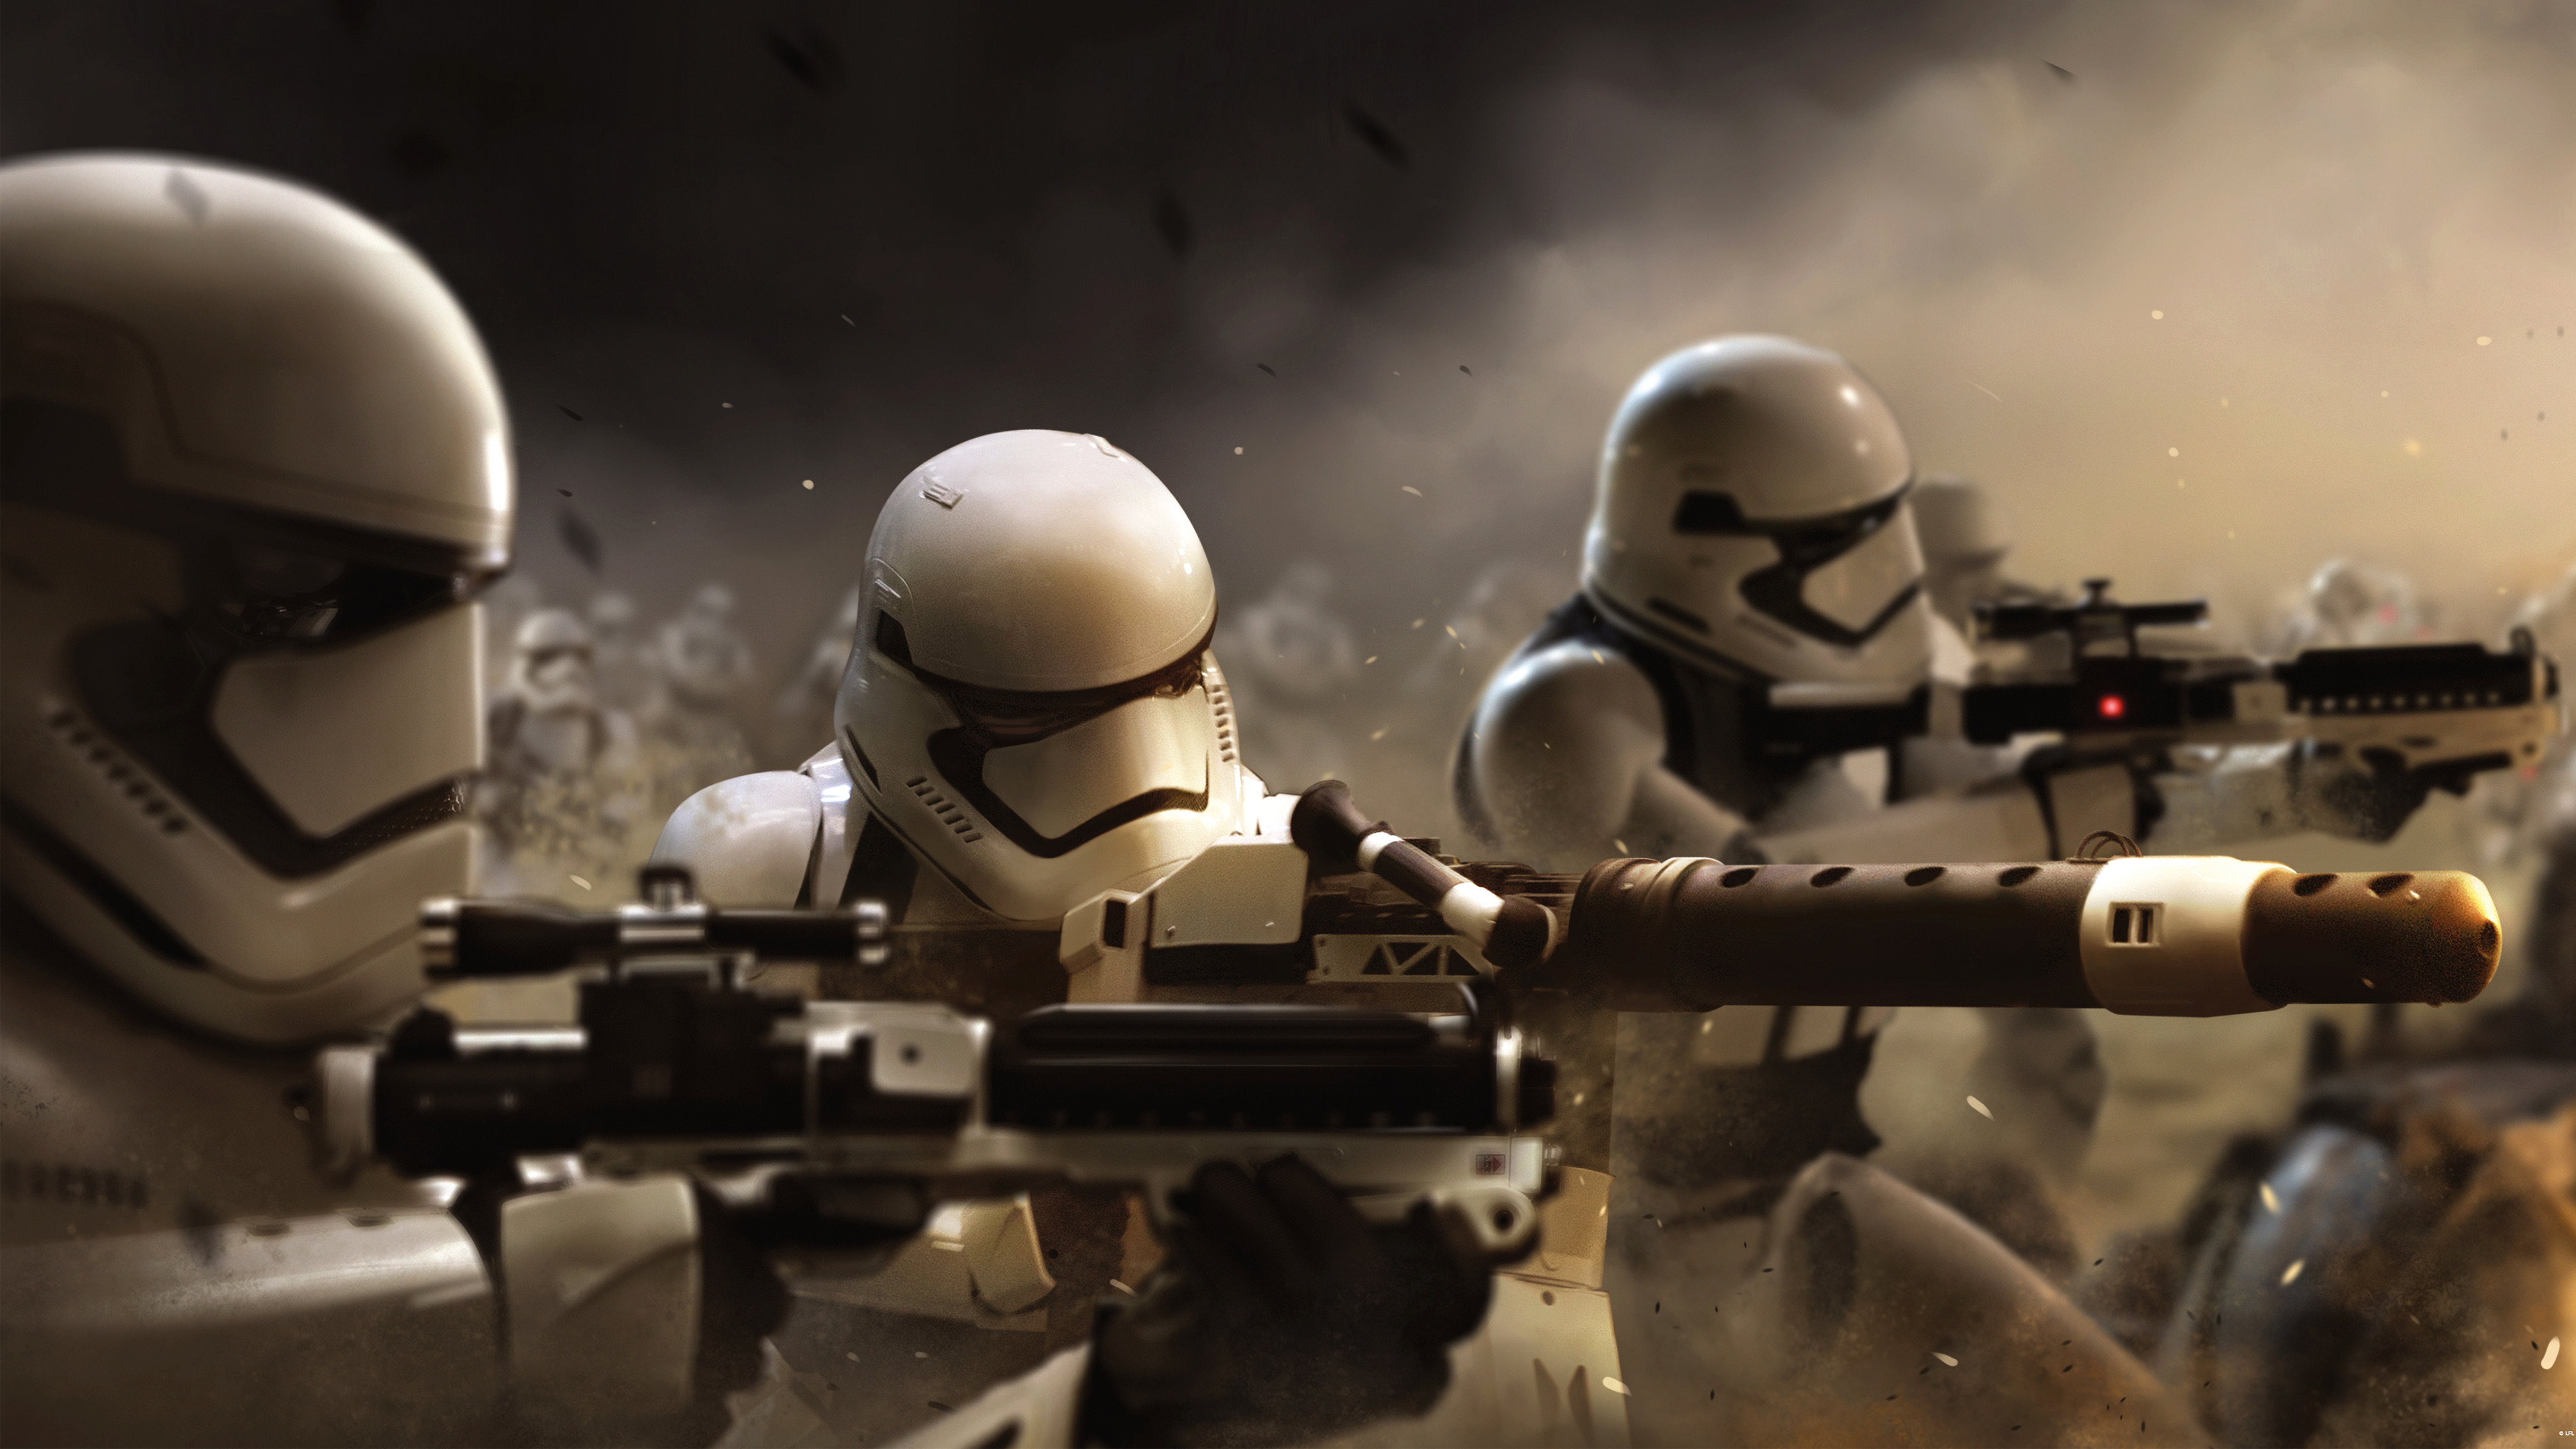 3840x2160 Stormtroopers Wallpapers | HD Wallpapers